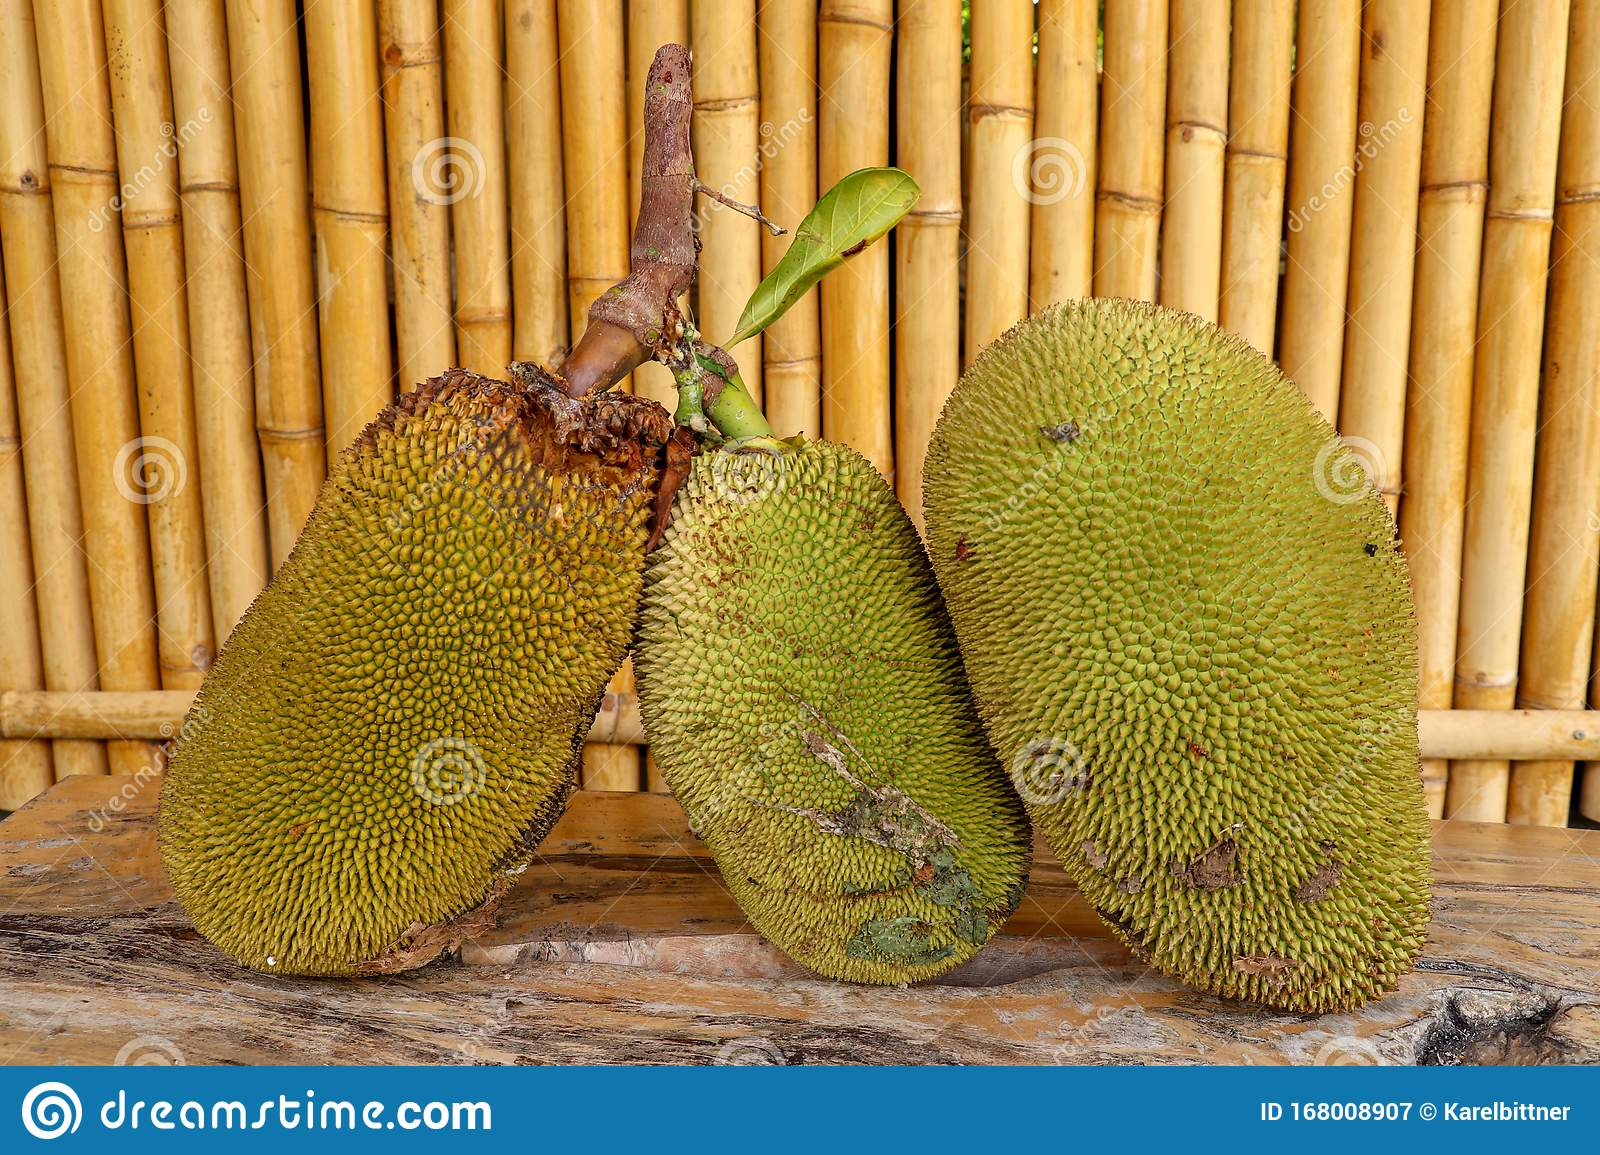 Ripe Fruits Of Jack Tree Whole Green Jack Fruit On A Robust Wooden Table With A Background With Bamboo Trunks Jackfruit On Wood Stock Image Image Of Cartoon Fruit 168008907 Find & download free graphic resources for jackfruit. dreamstime com